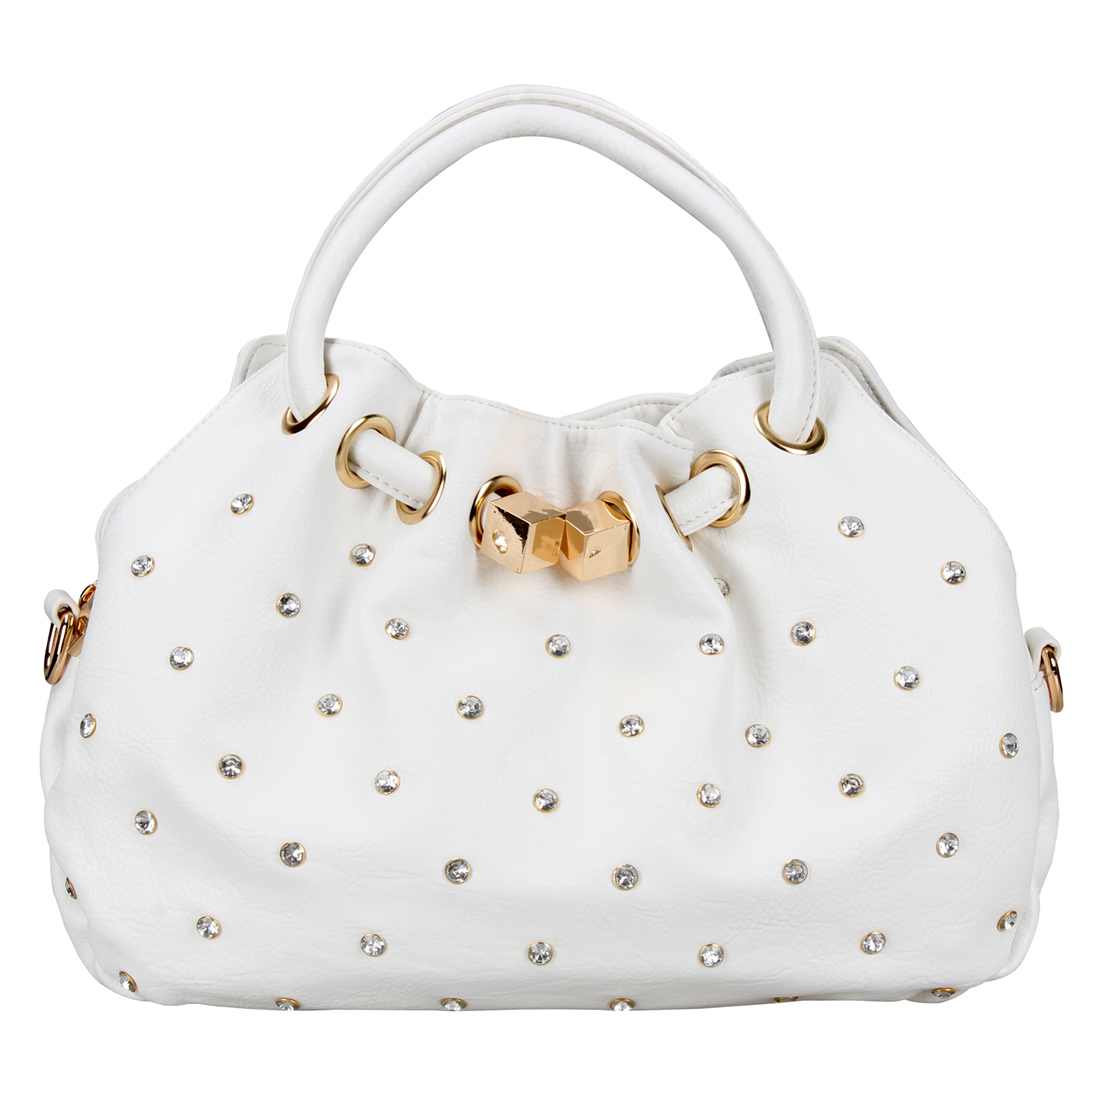 Rhinestone Studded Slouch Shoulder Bag with Removable Adjustable Shoulder Strap